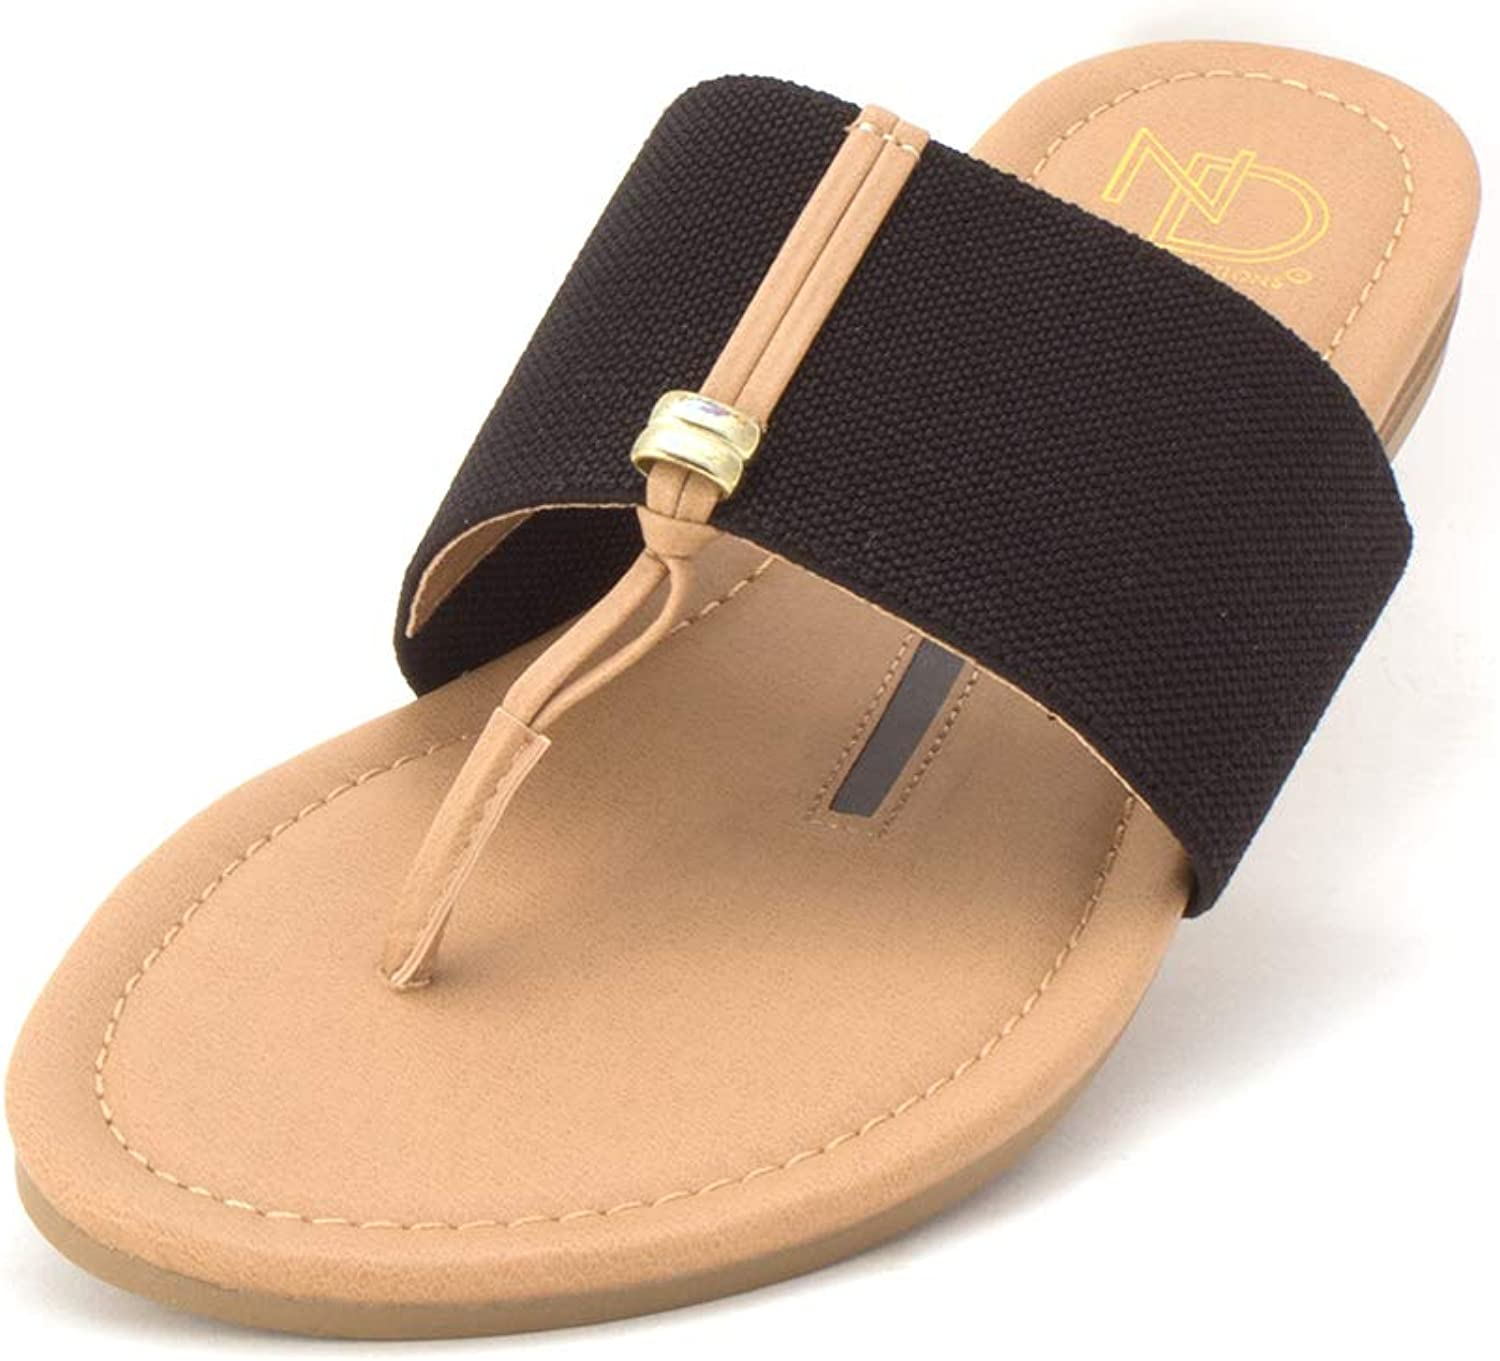 New Directions Womens Felicia Fabric Split Toe Casual Slide Sandals